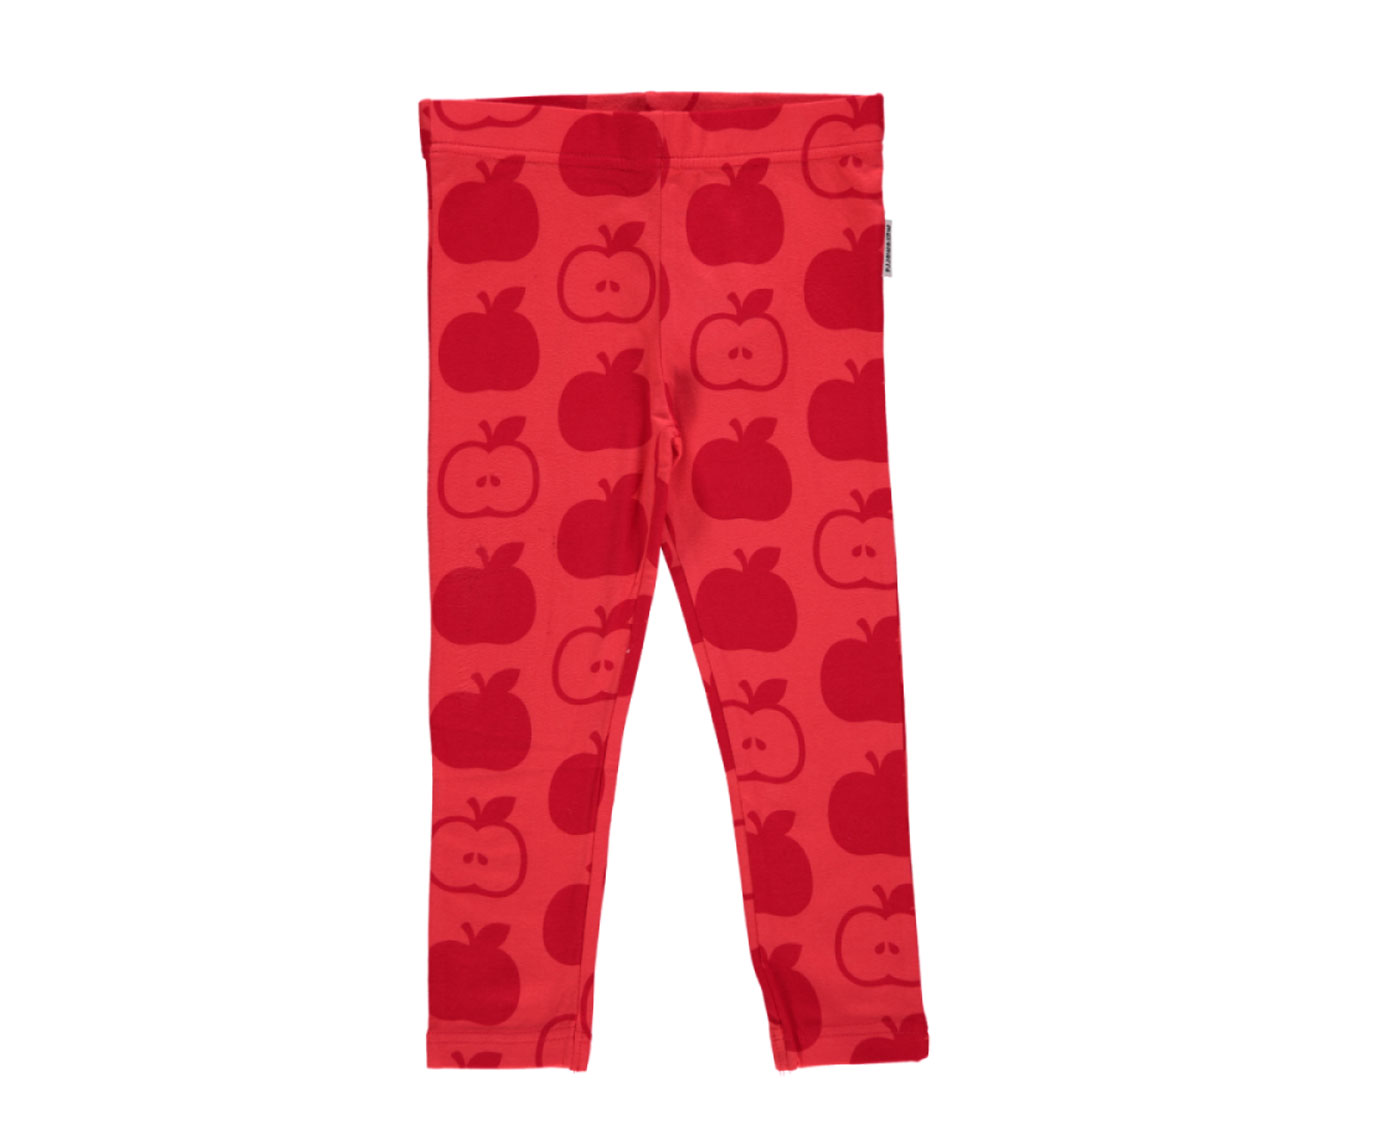 Legging 'Apple red'